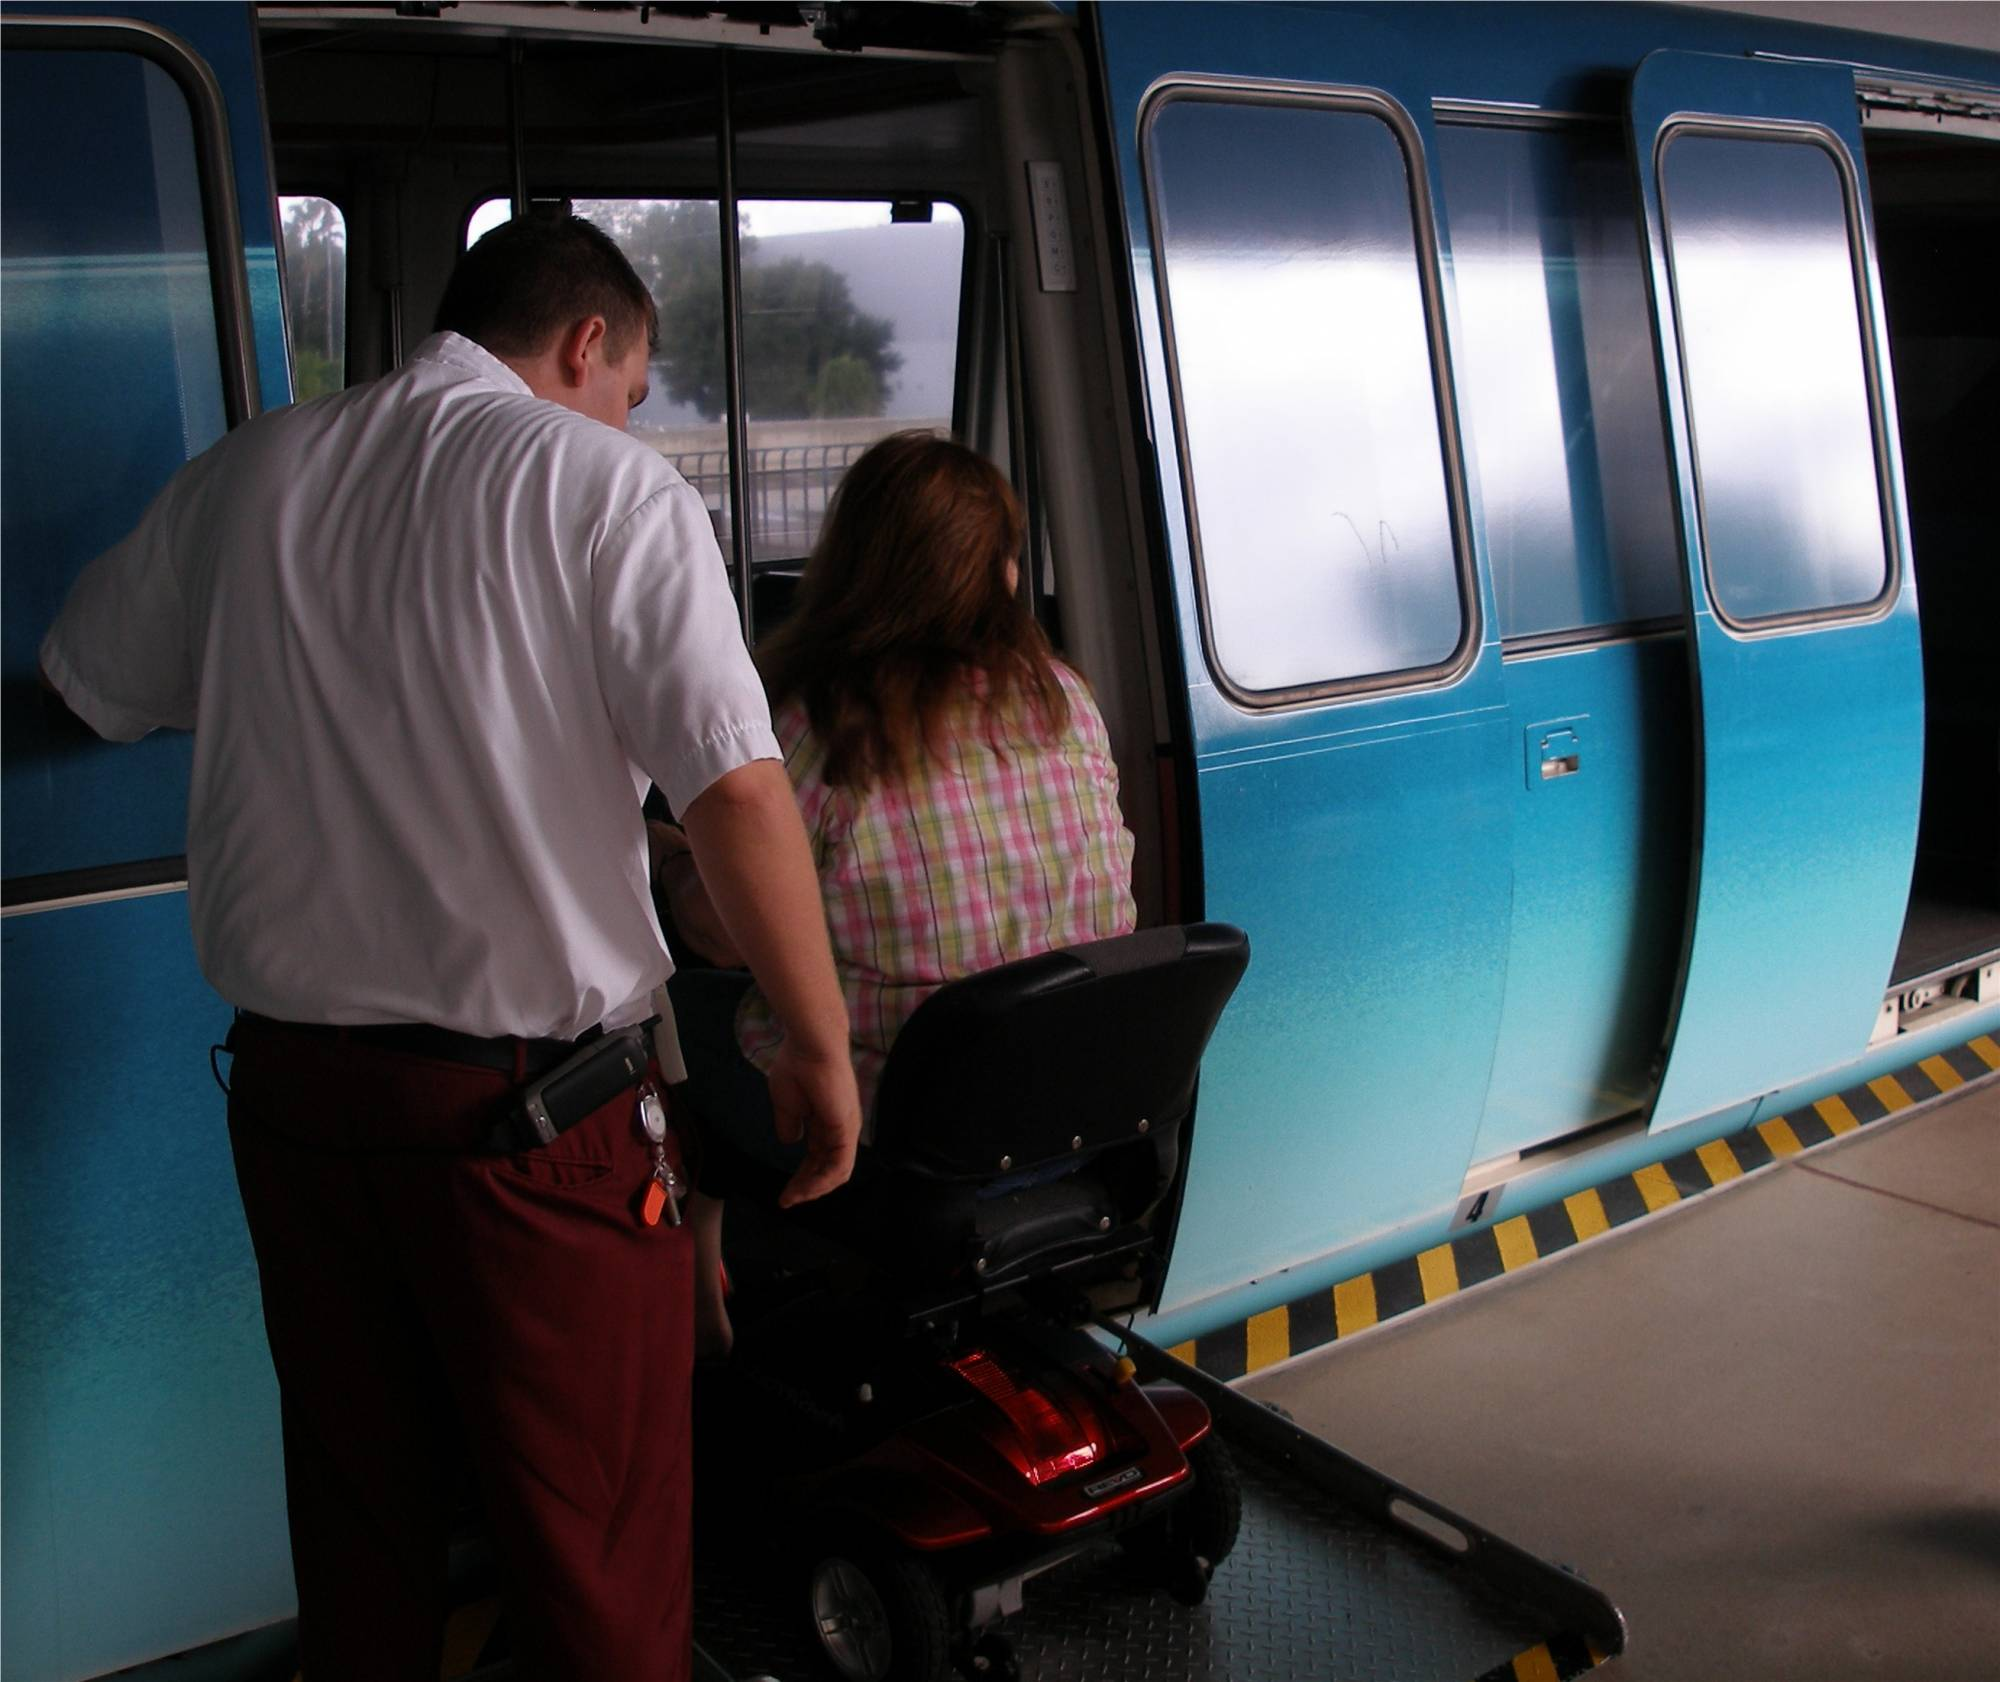 Getting on the Monorail